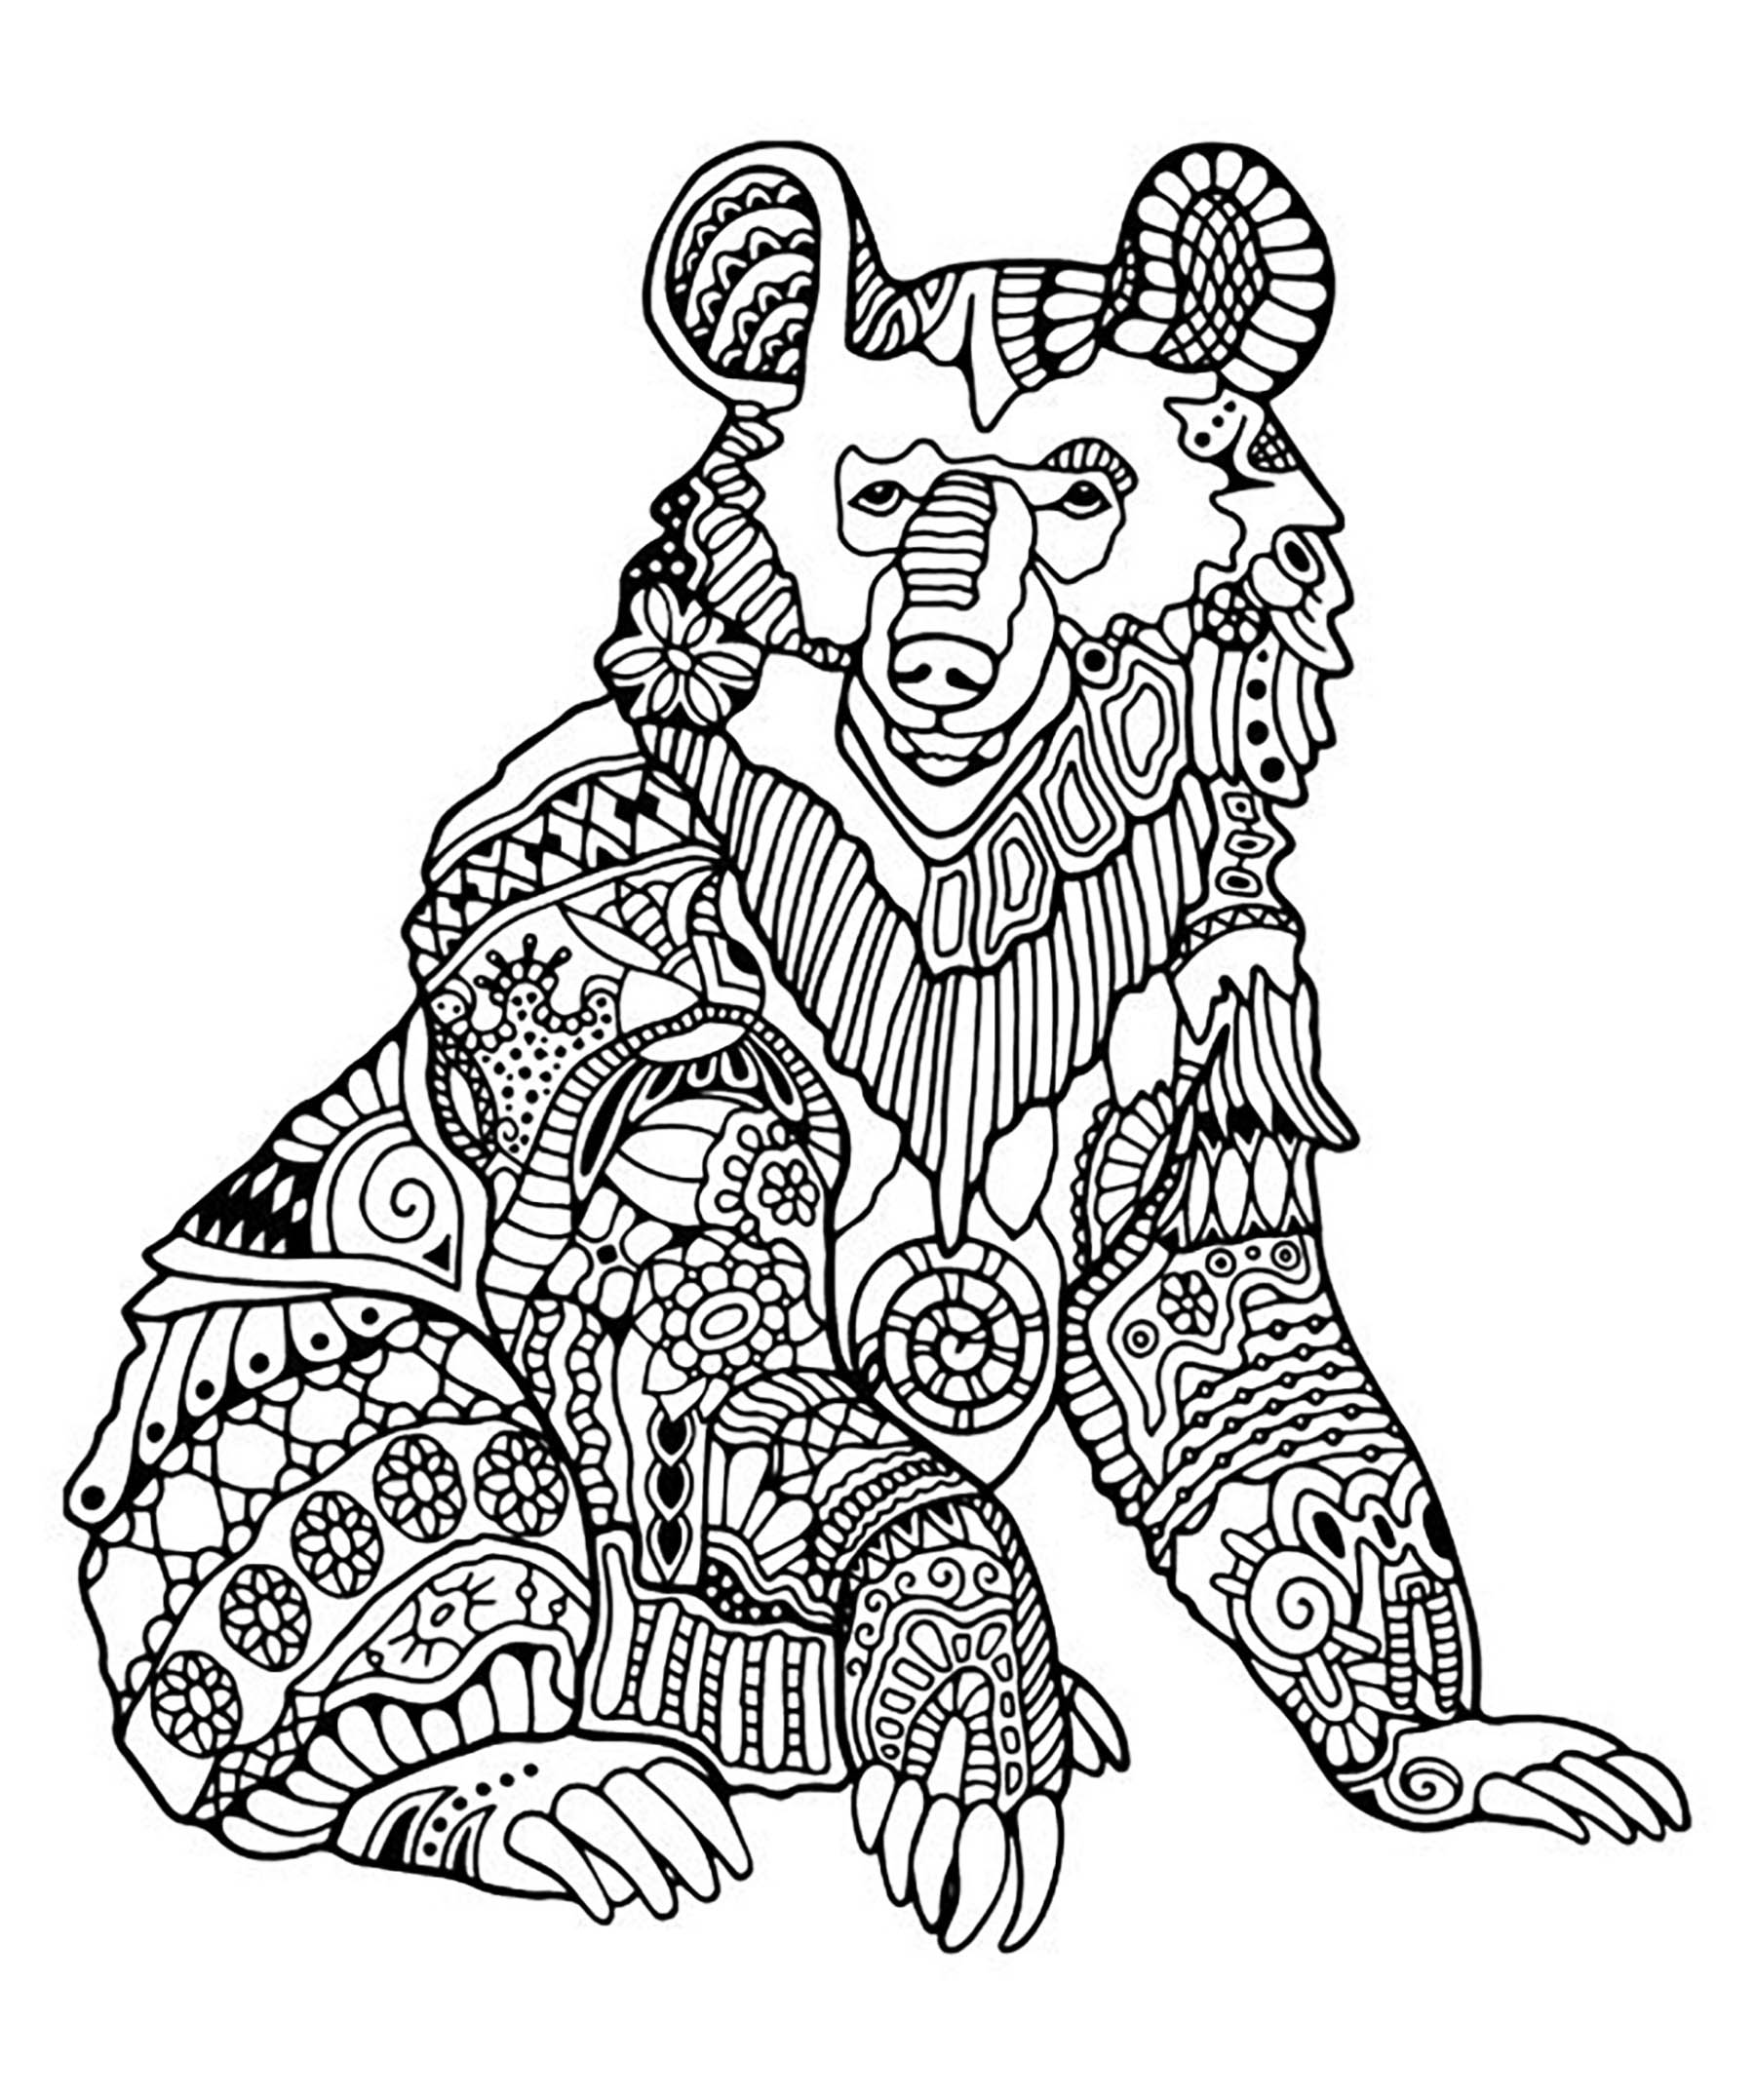 Coloring page of a Bear